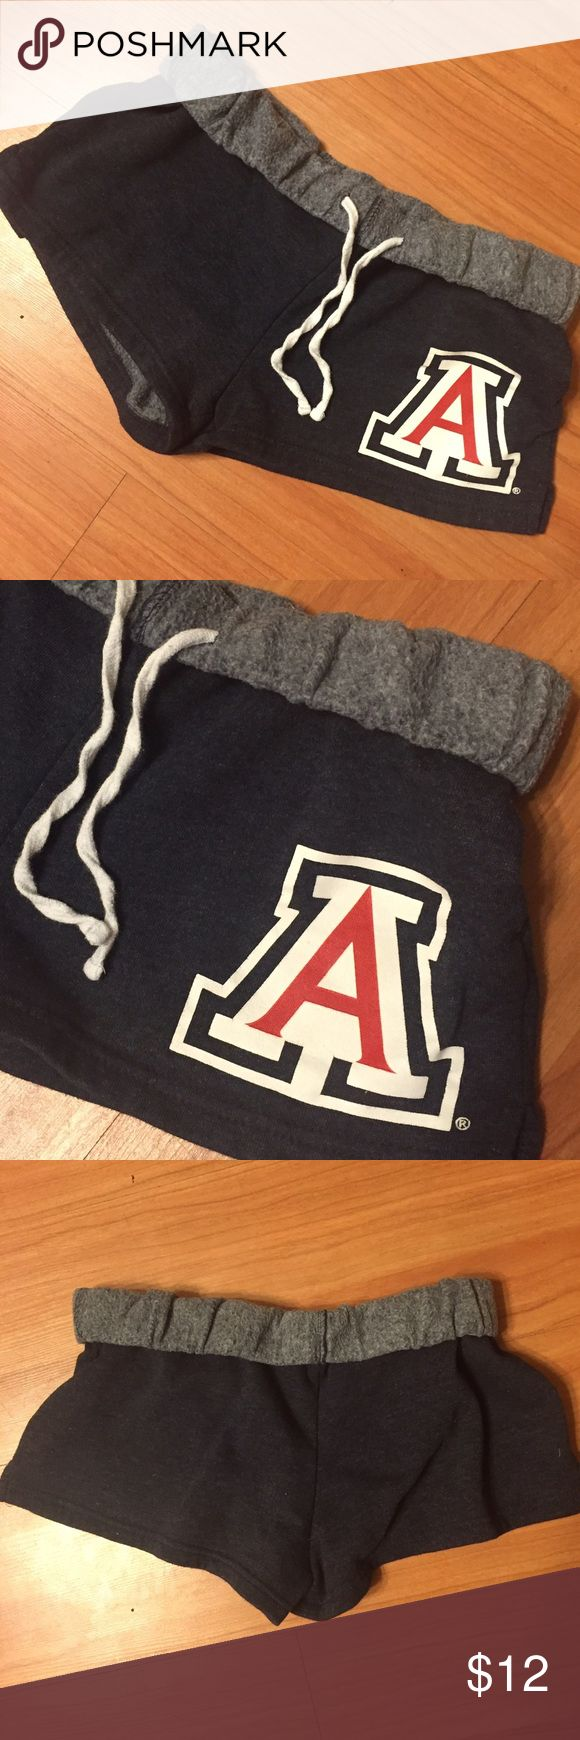 U of A wildcats cotton shorts NWOT blue U of A, University of Arizona Wildcats soft cotton roll down top shorts. Size small. Super soft and comfortable! Shorts